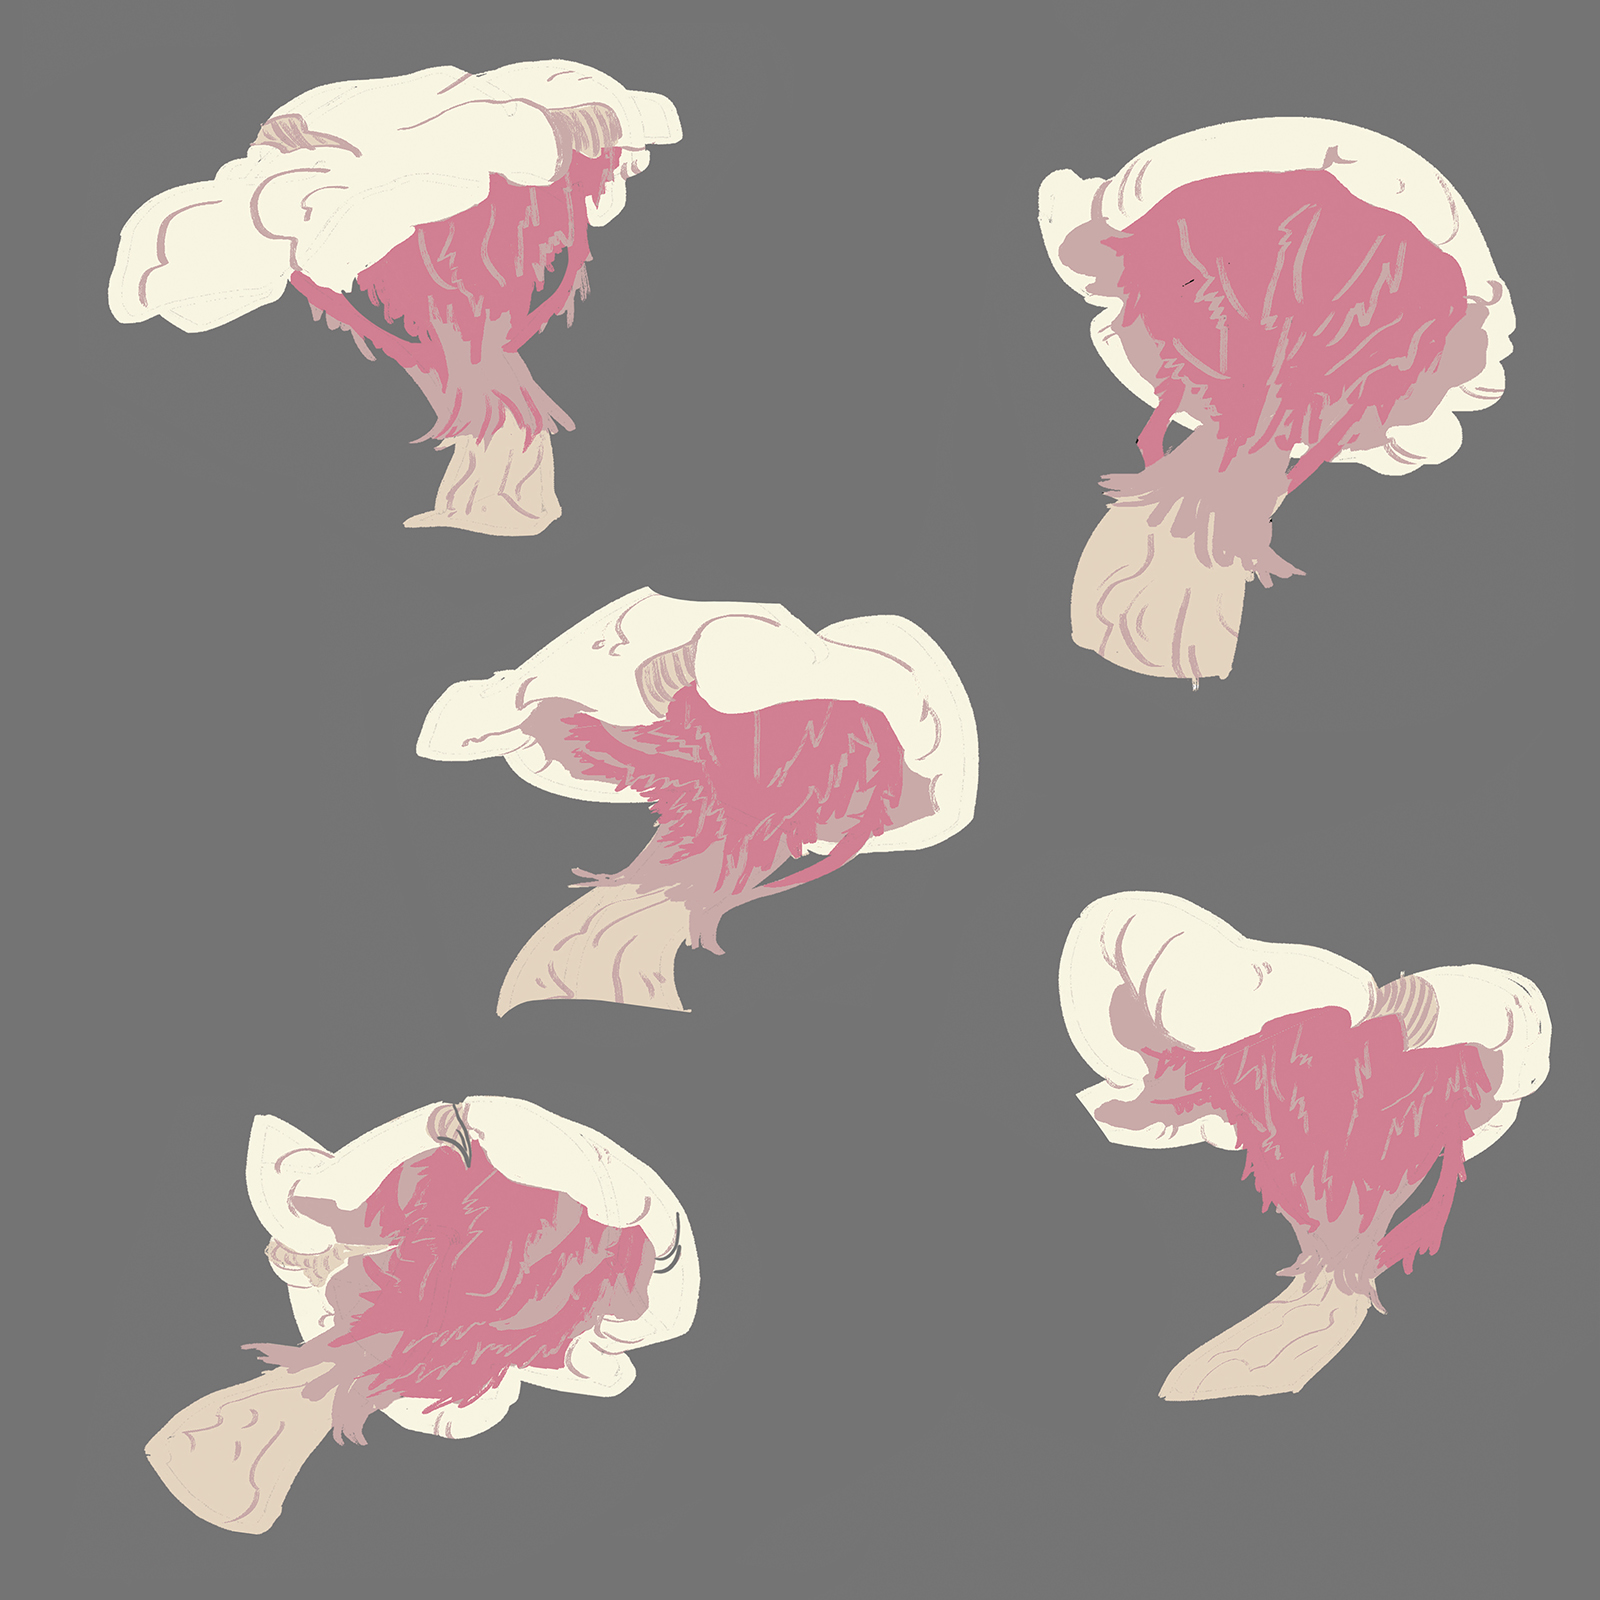 Item sheet, exploring mushroom designs for the sporren concept art. The mushroom has a white cap, a tan stem, and pink gills.